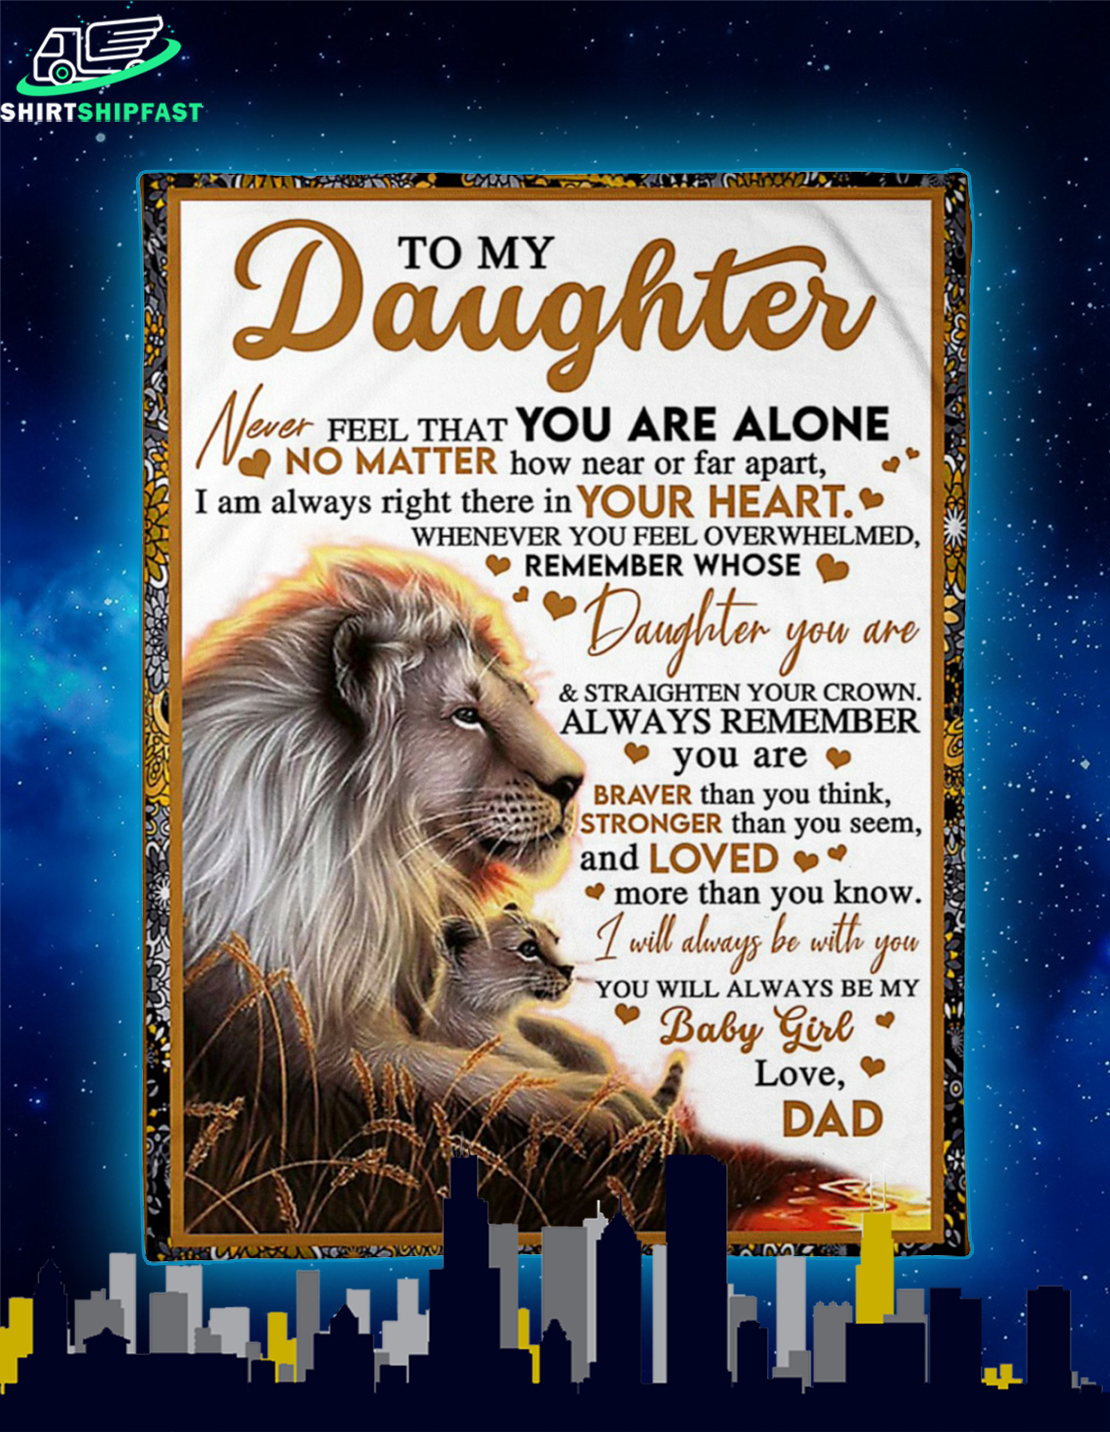 Lion Dad and daughter to my daughter never feel that you are alone blanket - Picture 2